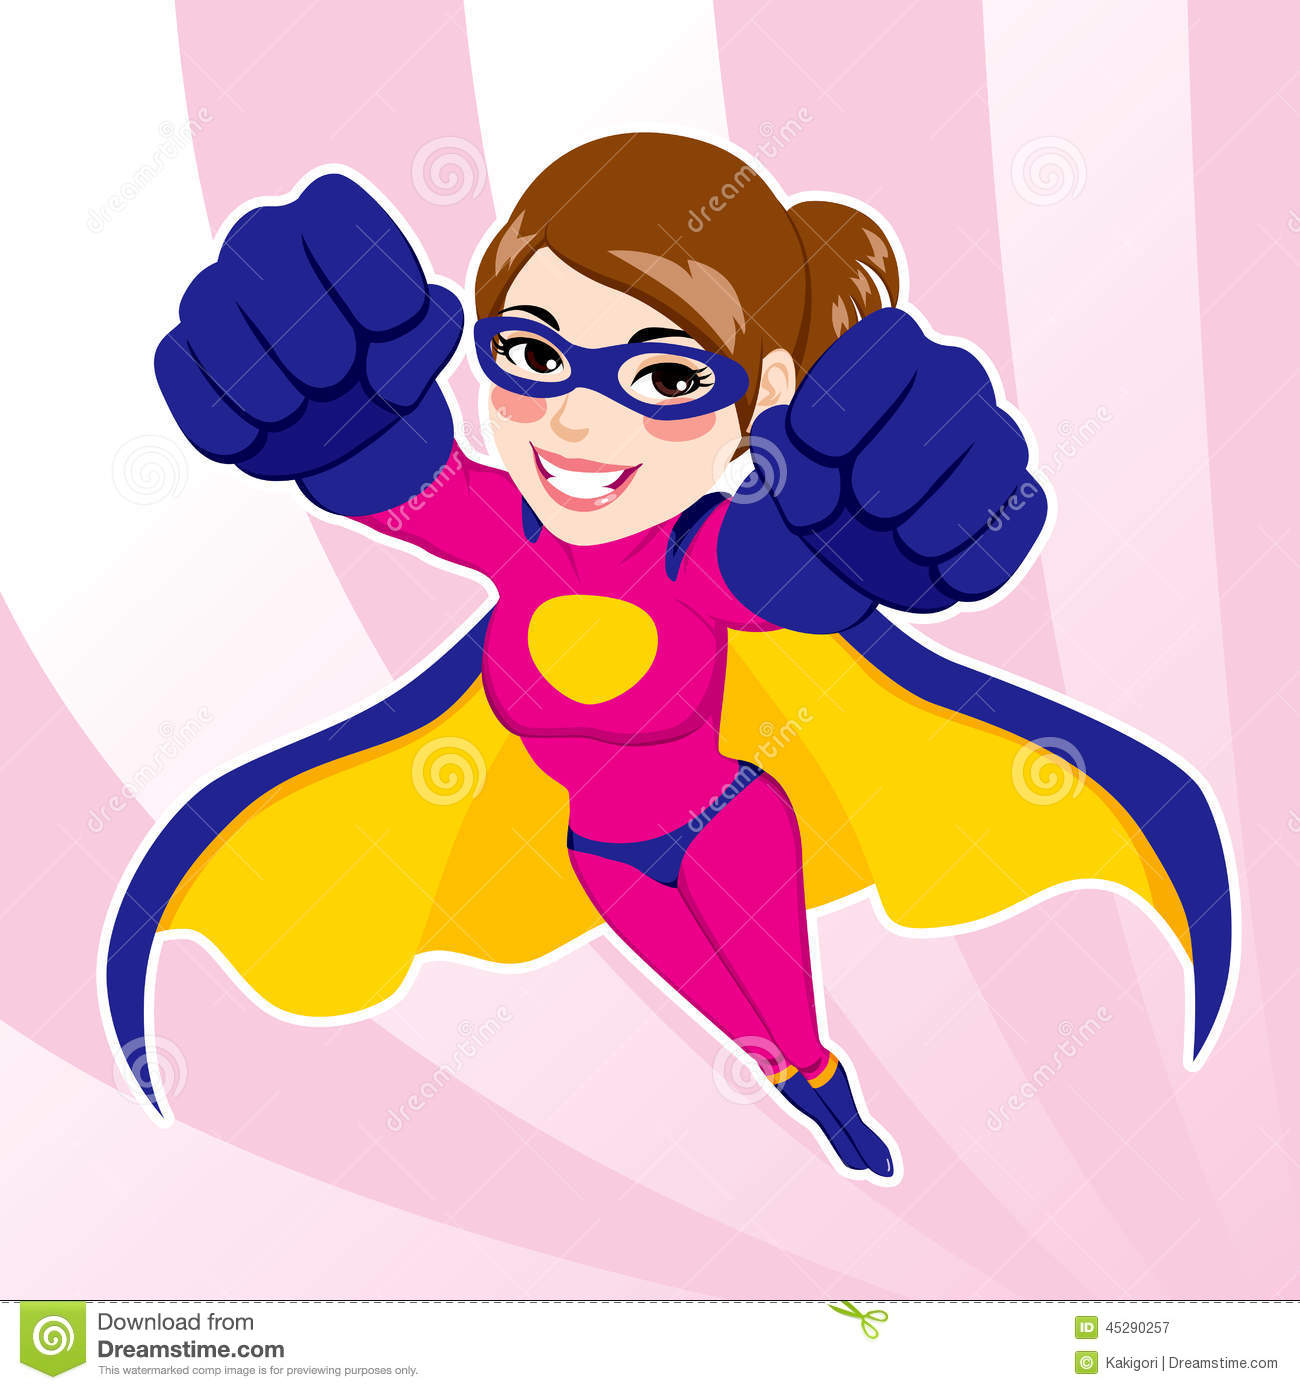 Pink clipart superhero Female superhero Google Search Woman